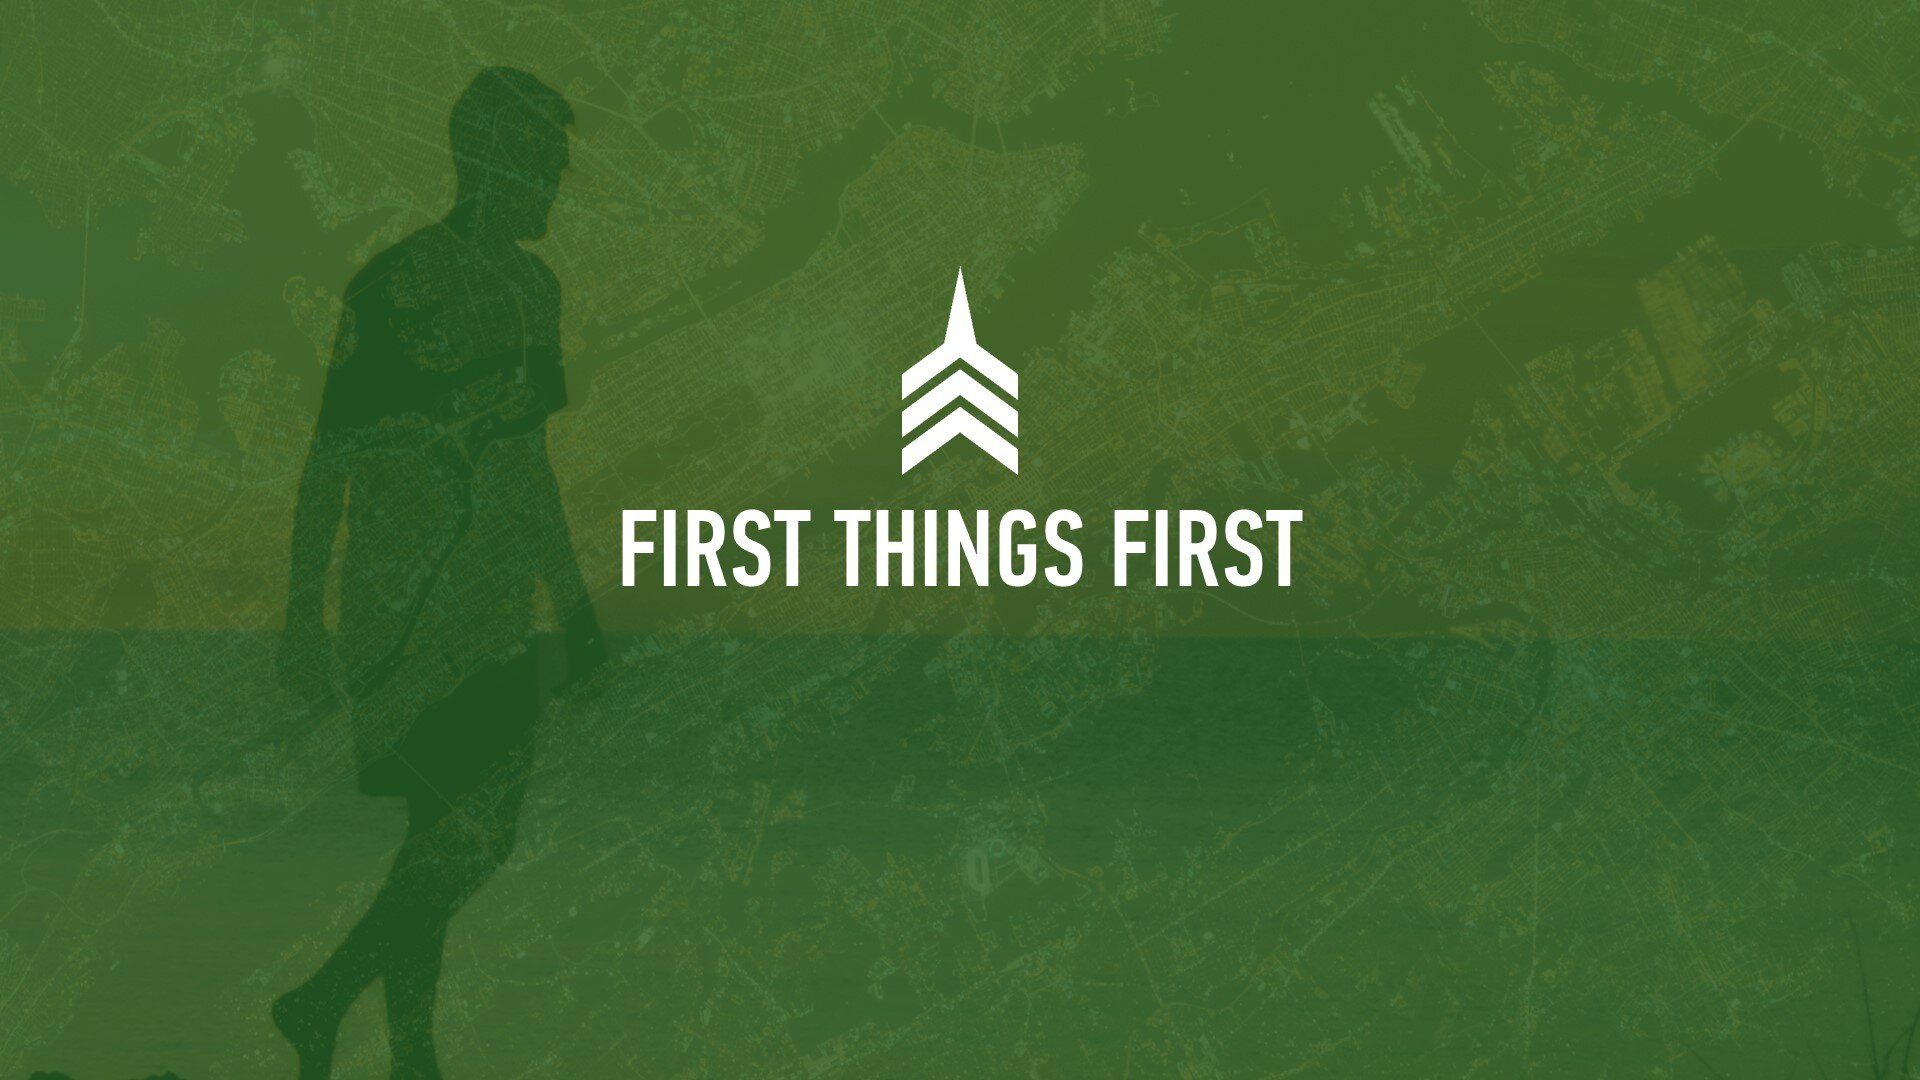 20191020 FIRST THINGS FIRST.JPG